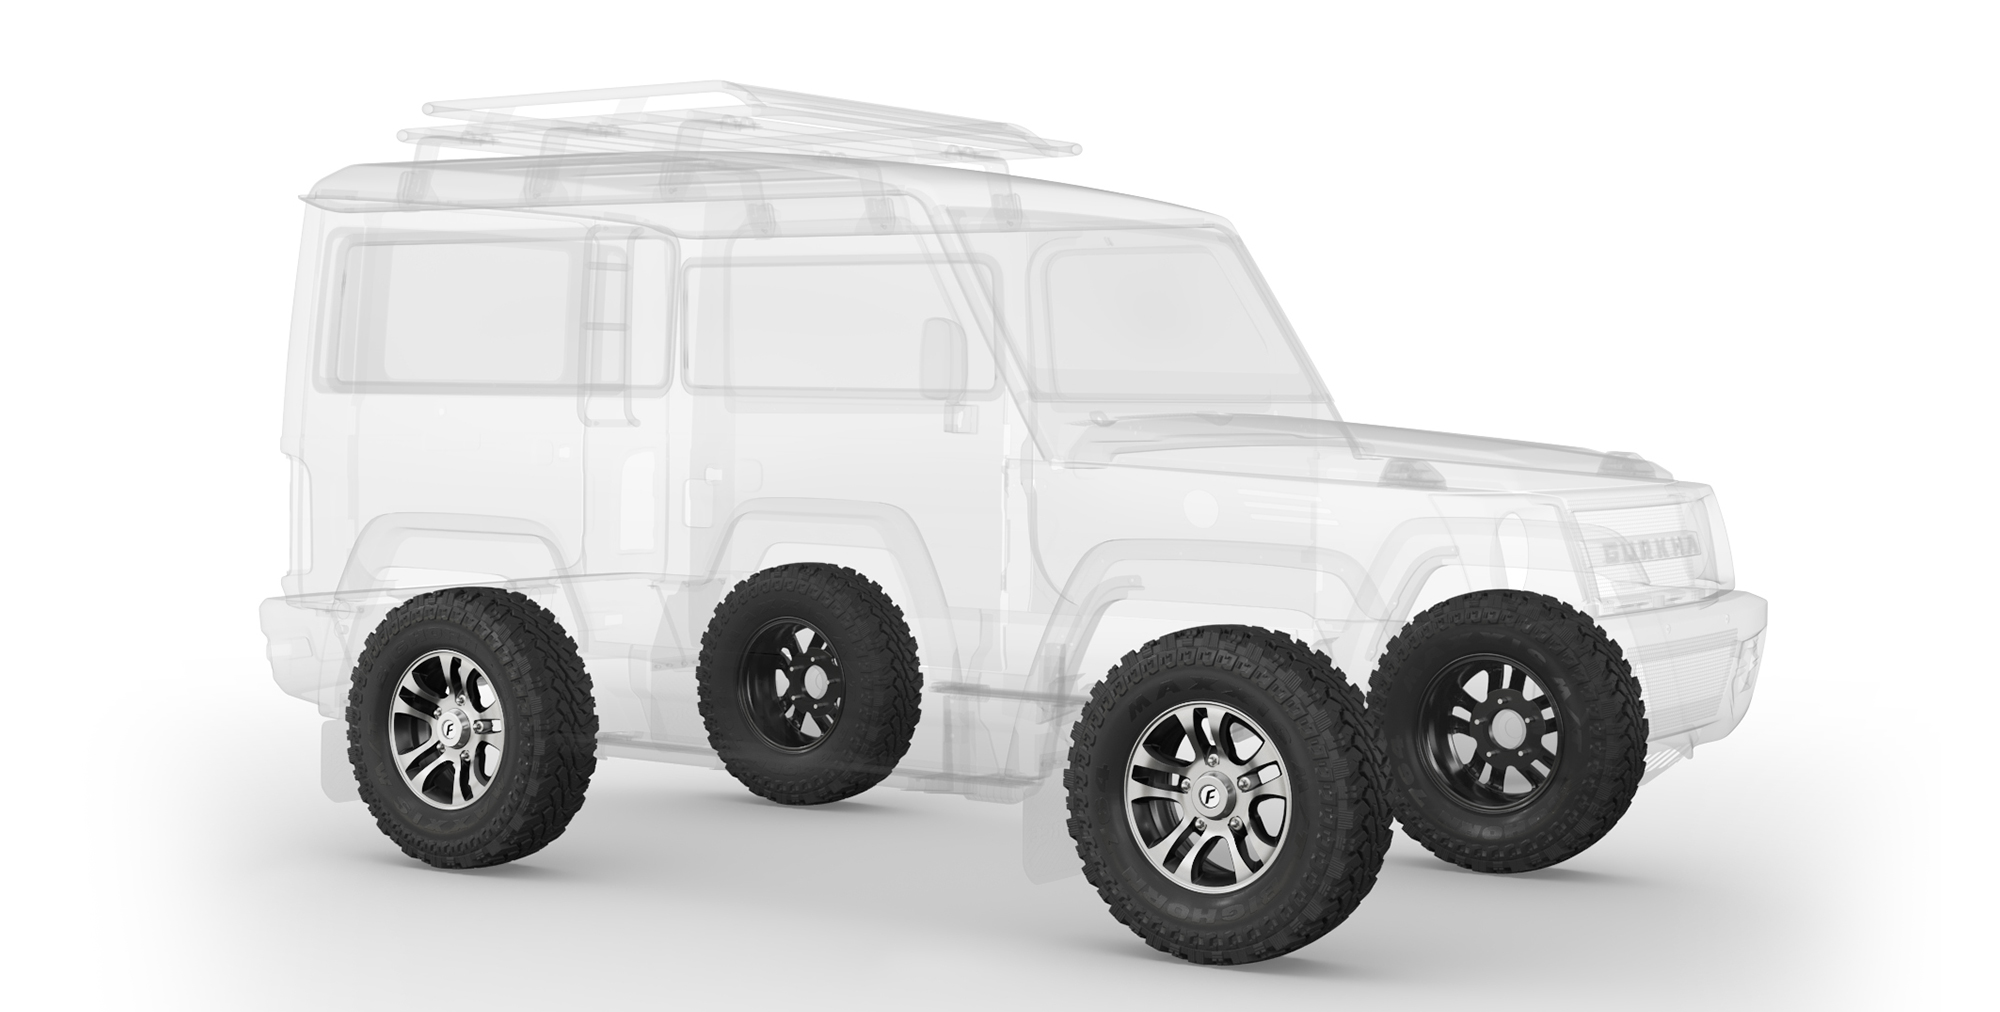 2021 Force Gurkha 4x4x4 with Alloy Wheels and AT Tyres